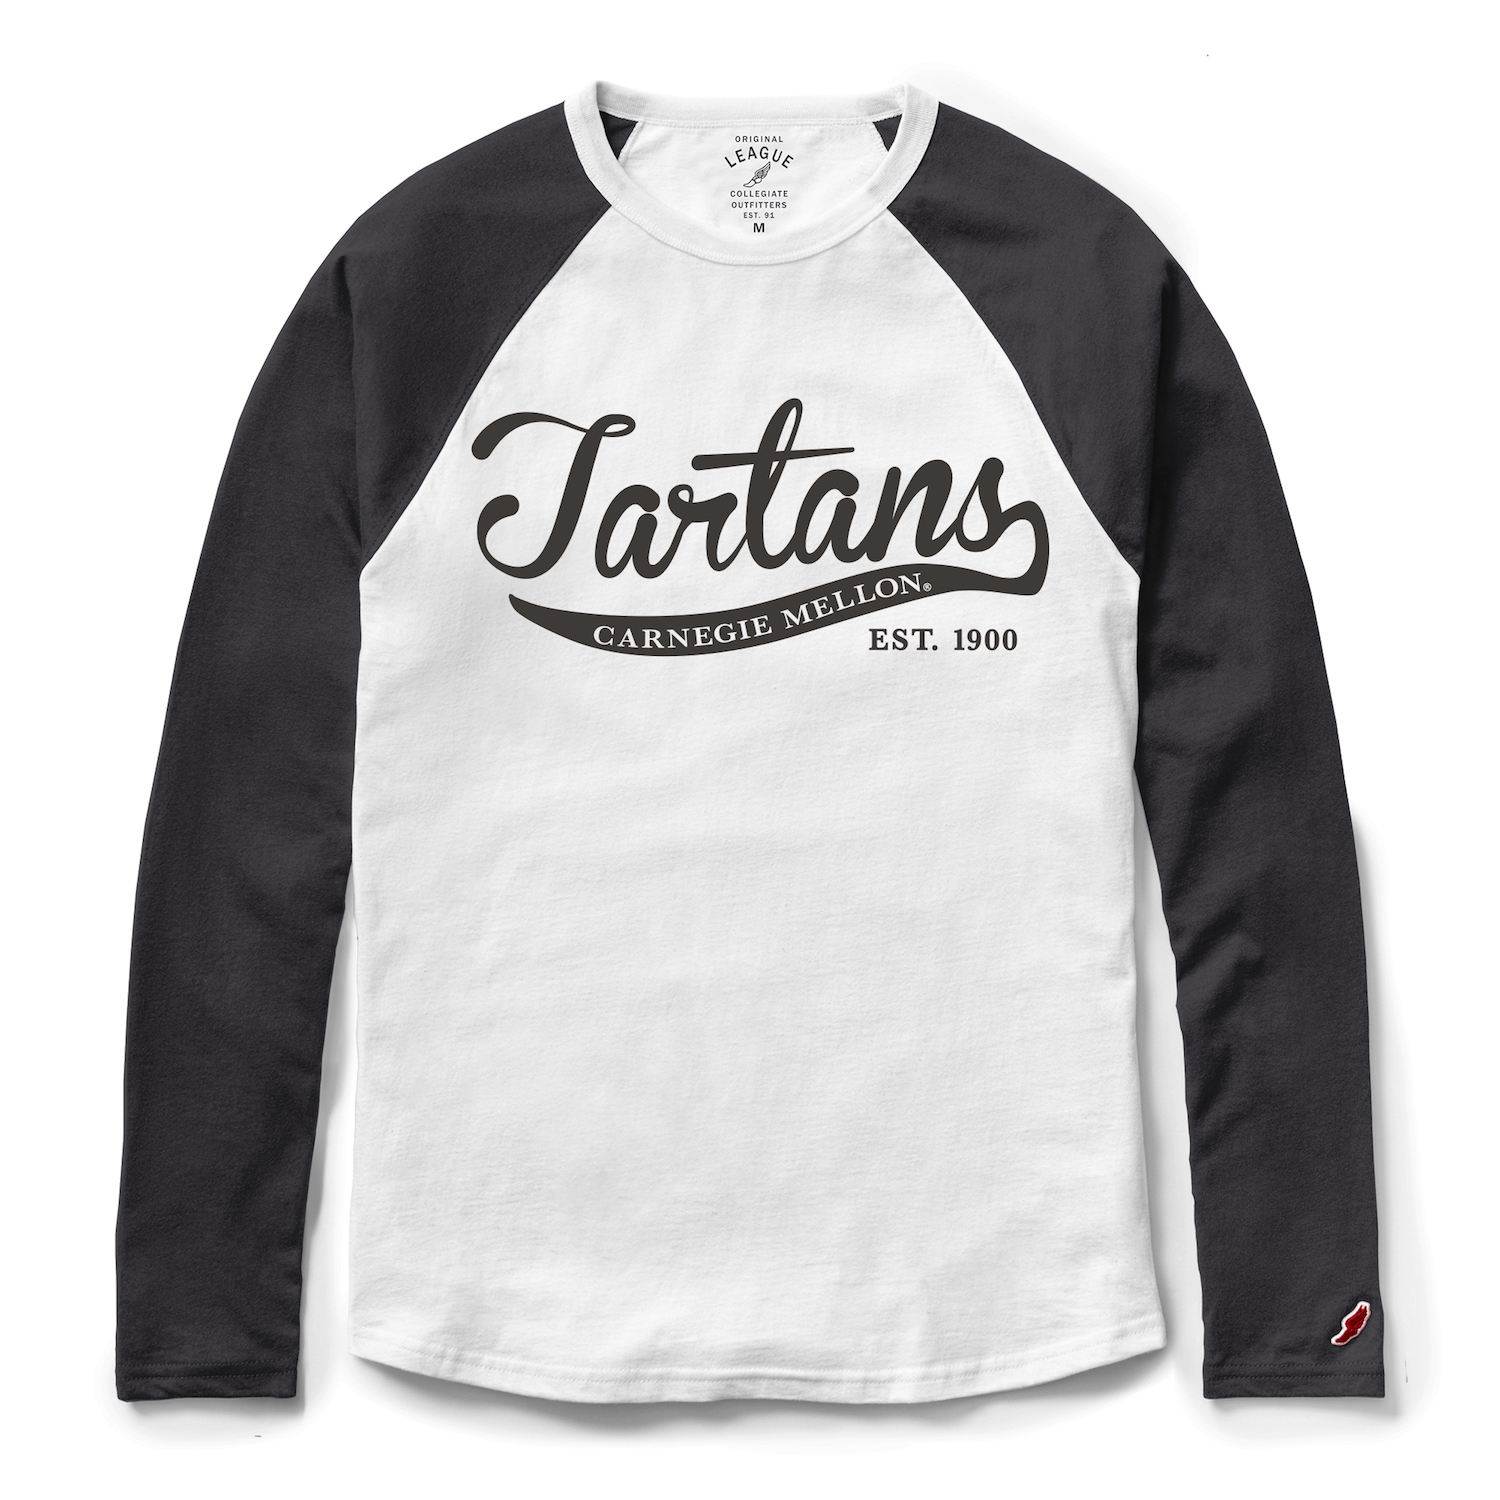 All American Baseball Tee: Black